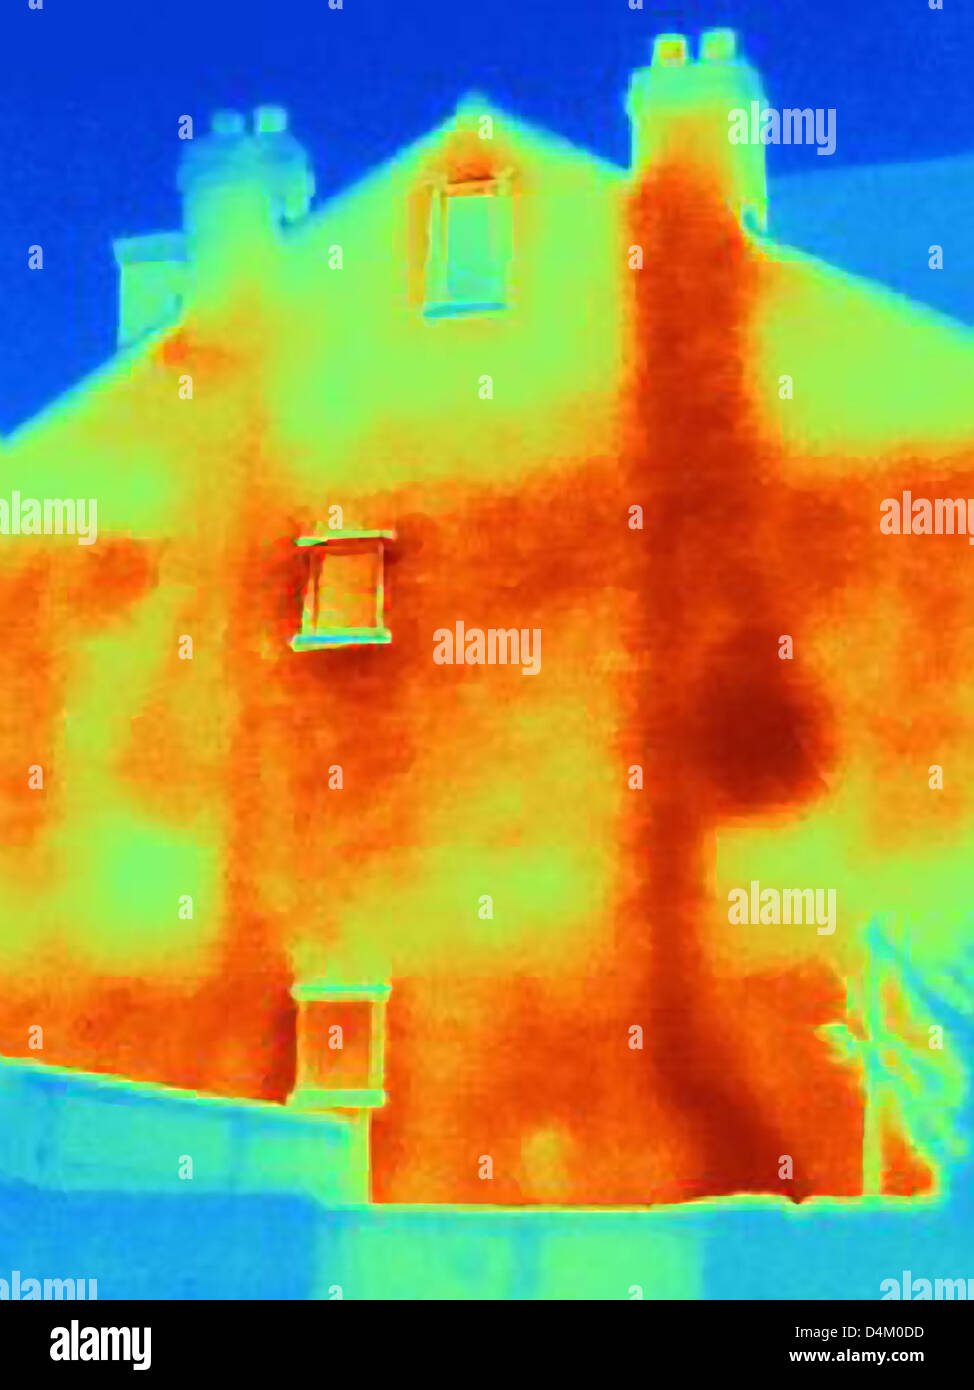 Thermal image of house and chimneys - Stock Image